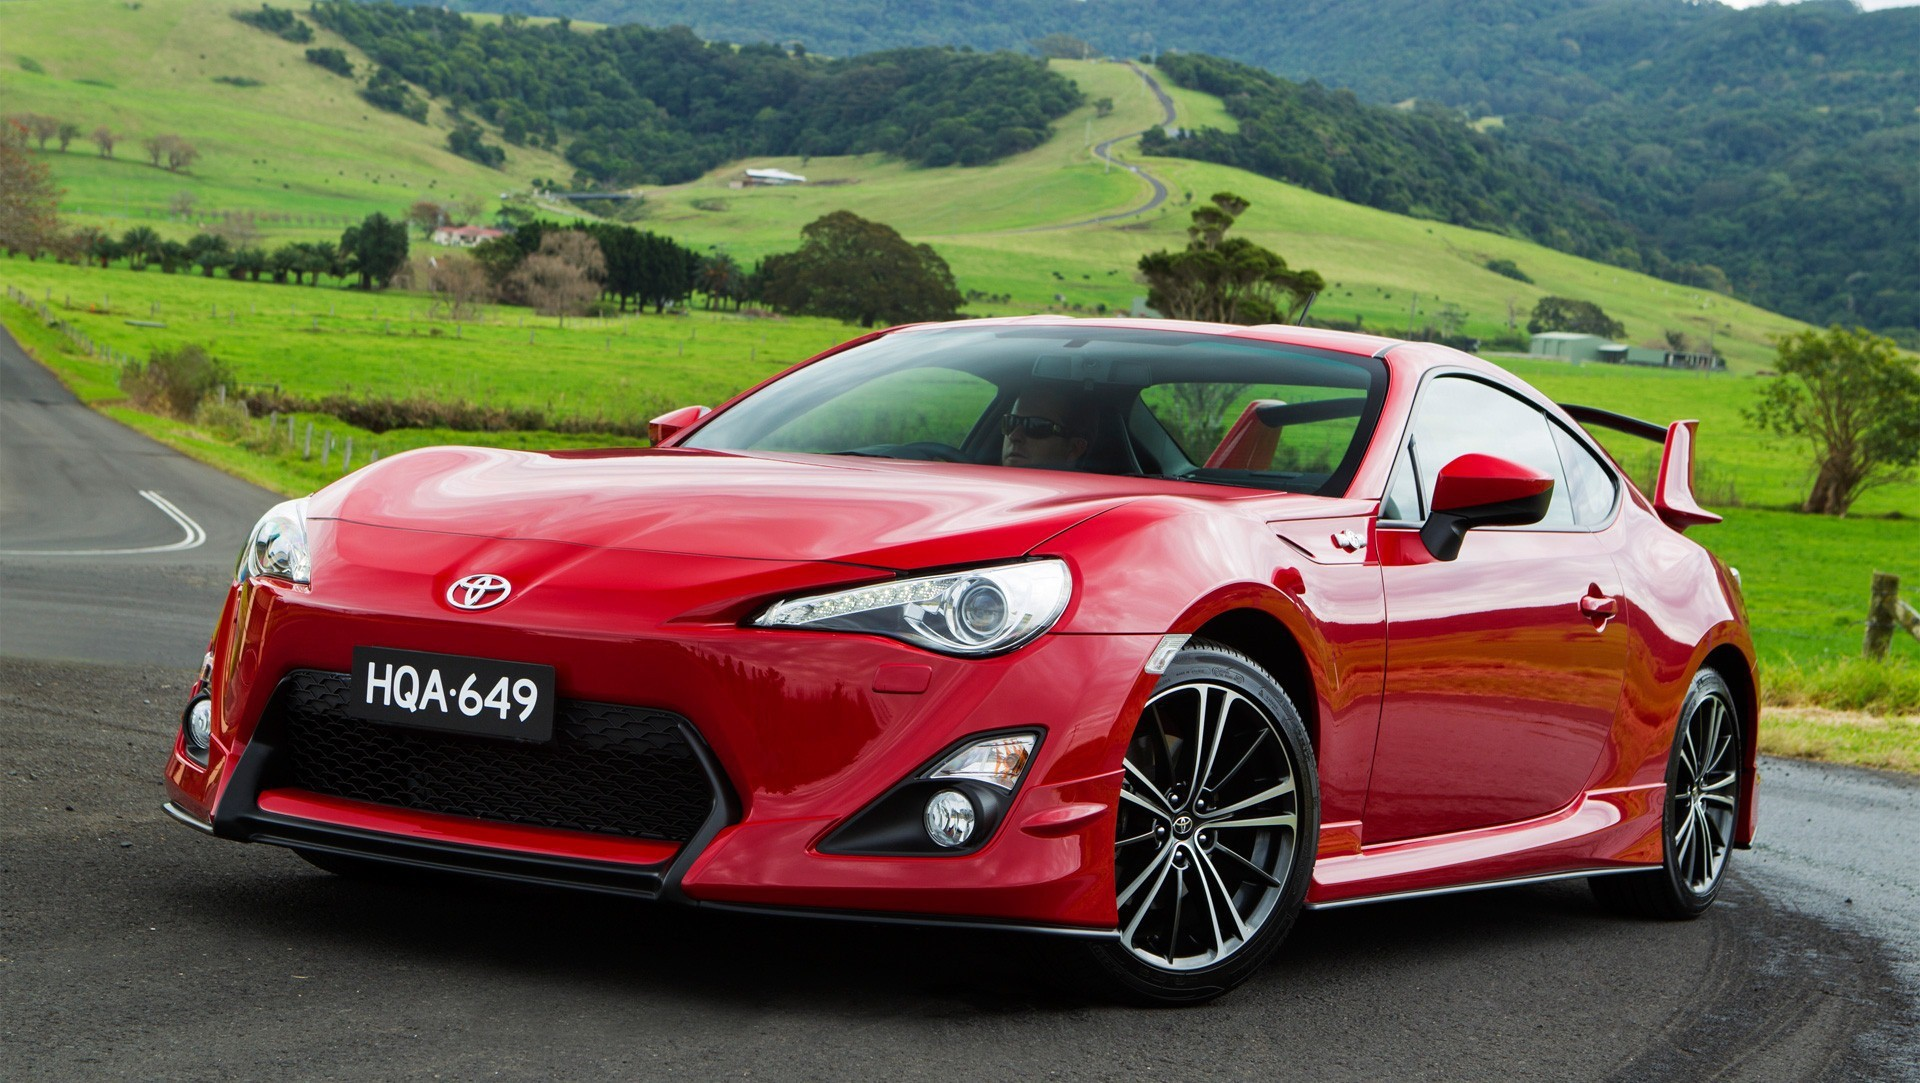 Toyota GT 86 Wallpapers Images Photos Pictures Backgrounds 1920x1083